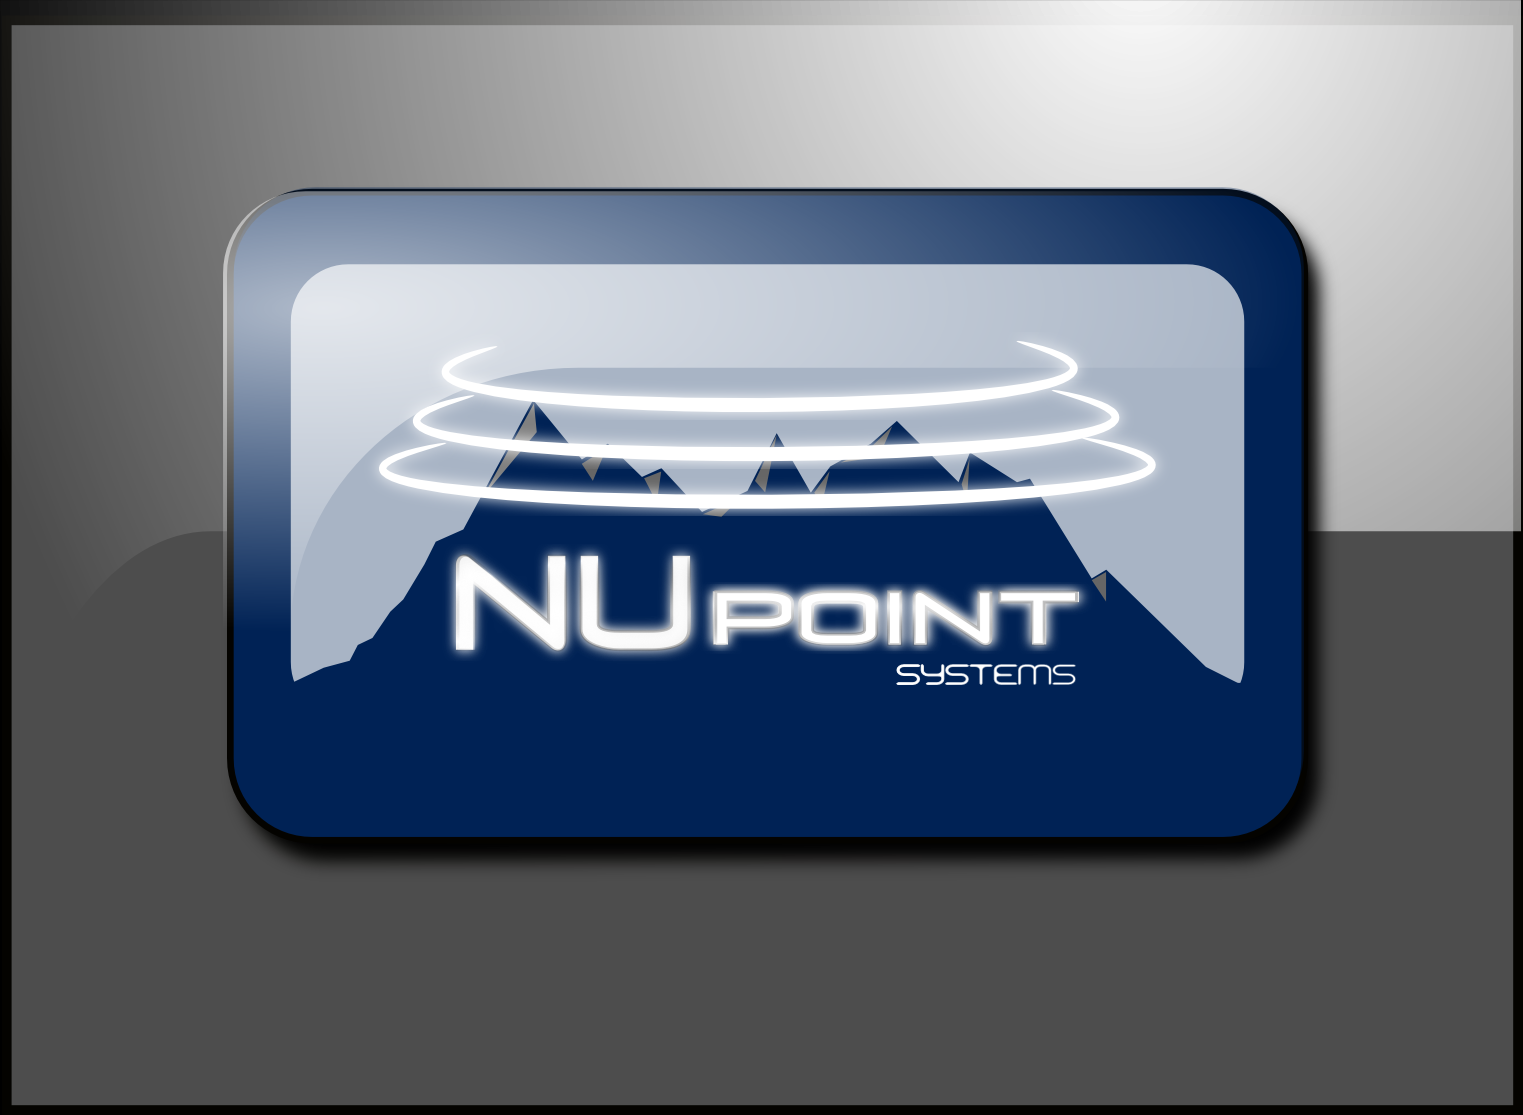 Logo Design by Joseph calunsag Cagaanan - Entry No. 55 in the Logo Design Contest Unique Logo Design Wanted for Nupoint Systems Inc..